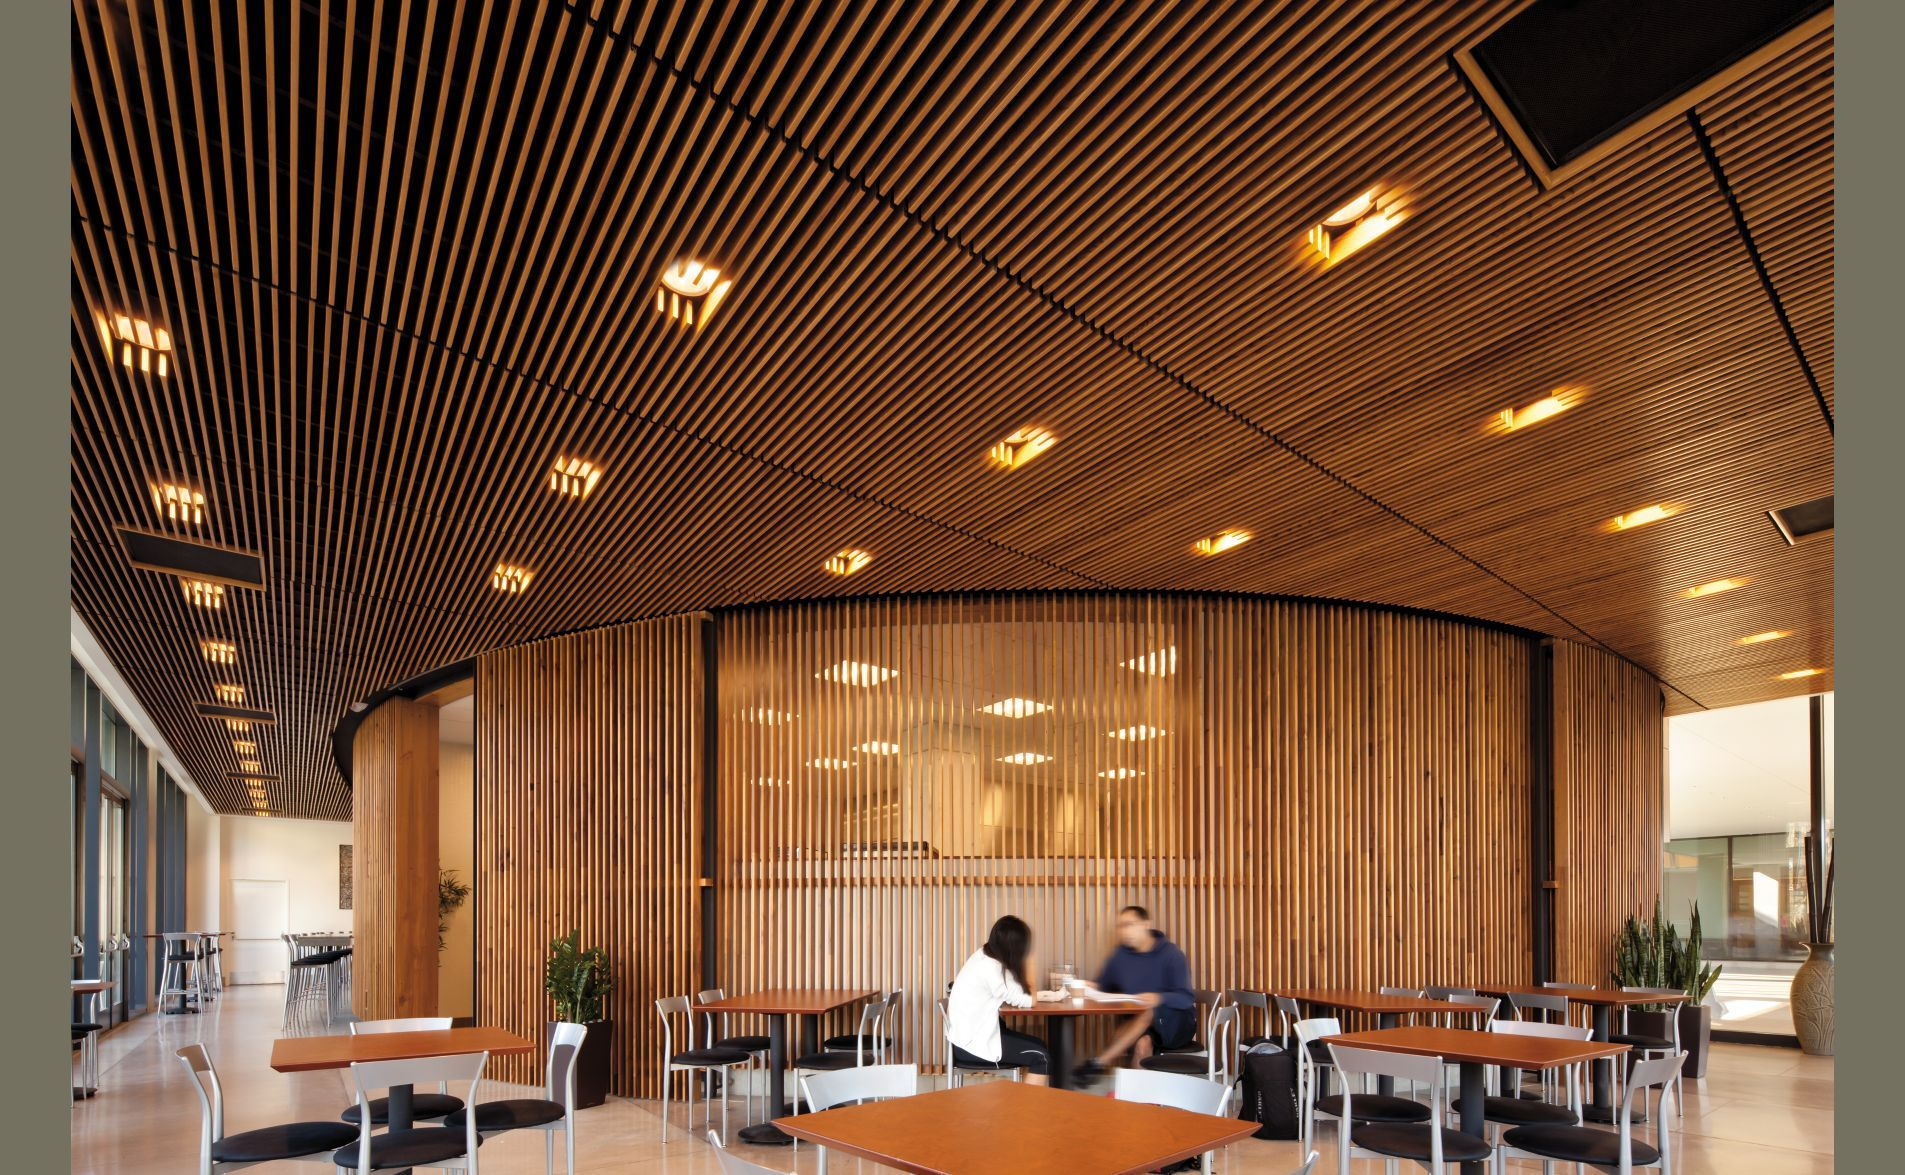 Commercial Ceiling and Wall Systems Idea & Photo Gallery ...